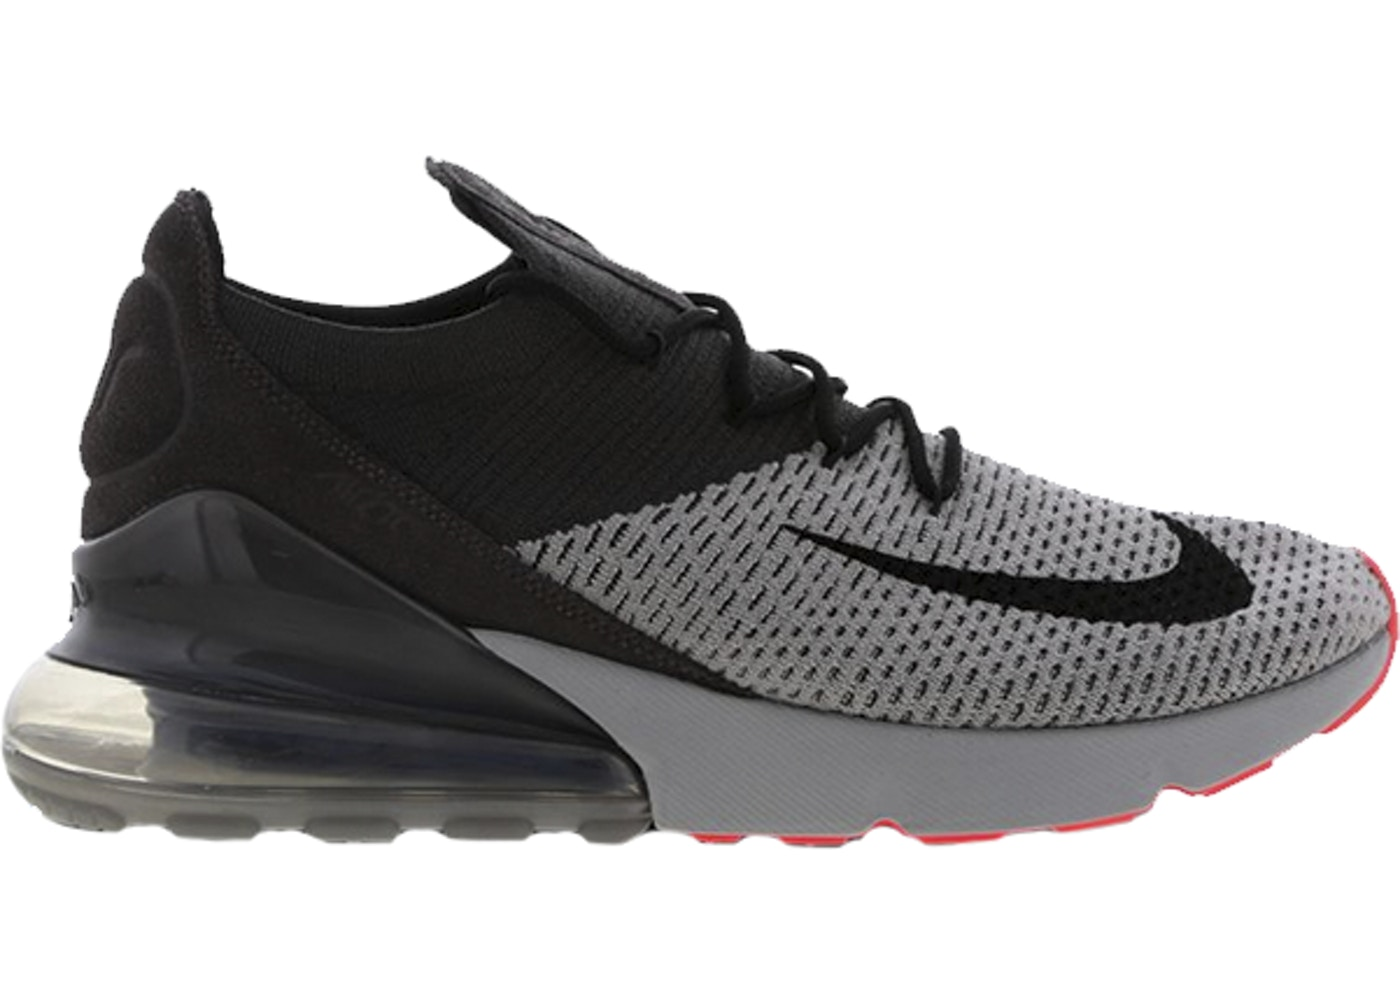 best sell 100% top quality finest selection Buy Nike Air Max 270 Shoes & Deadstock Sneakers